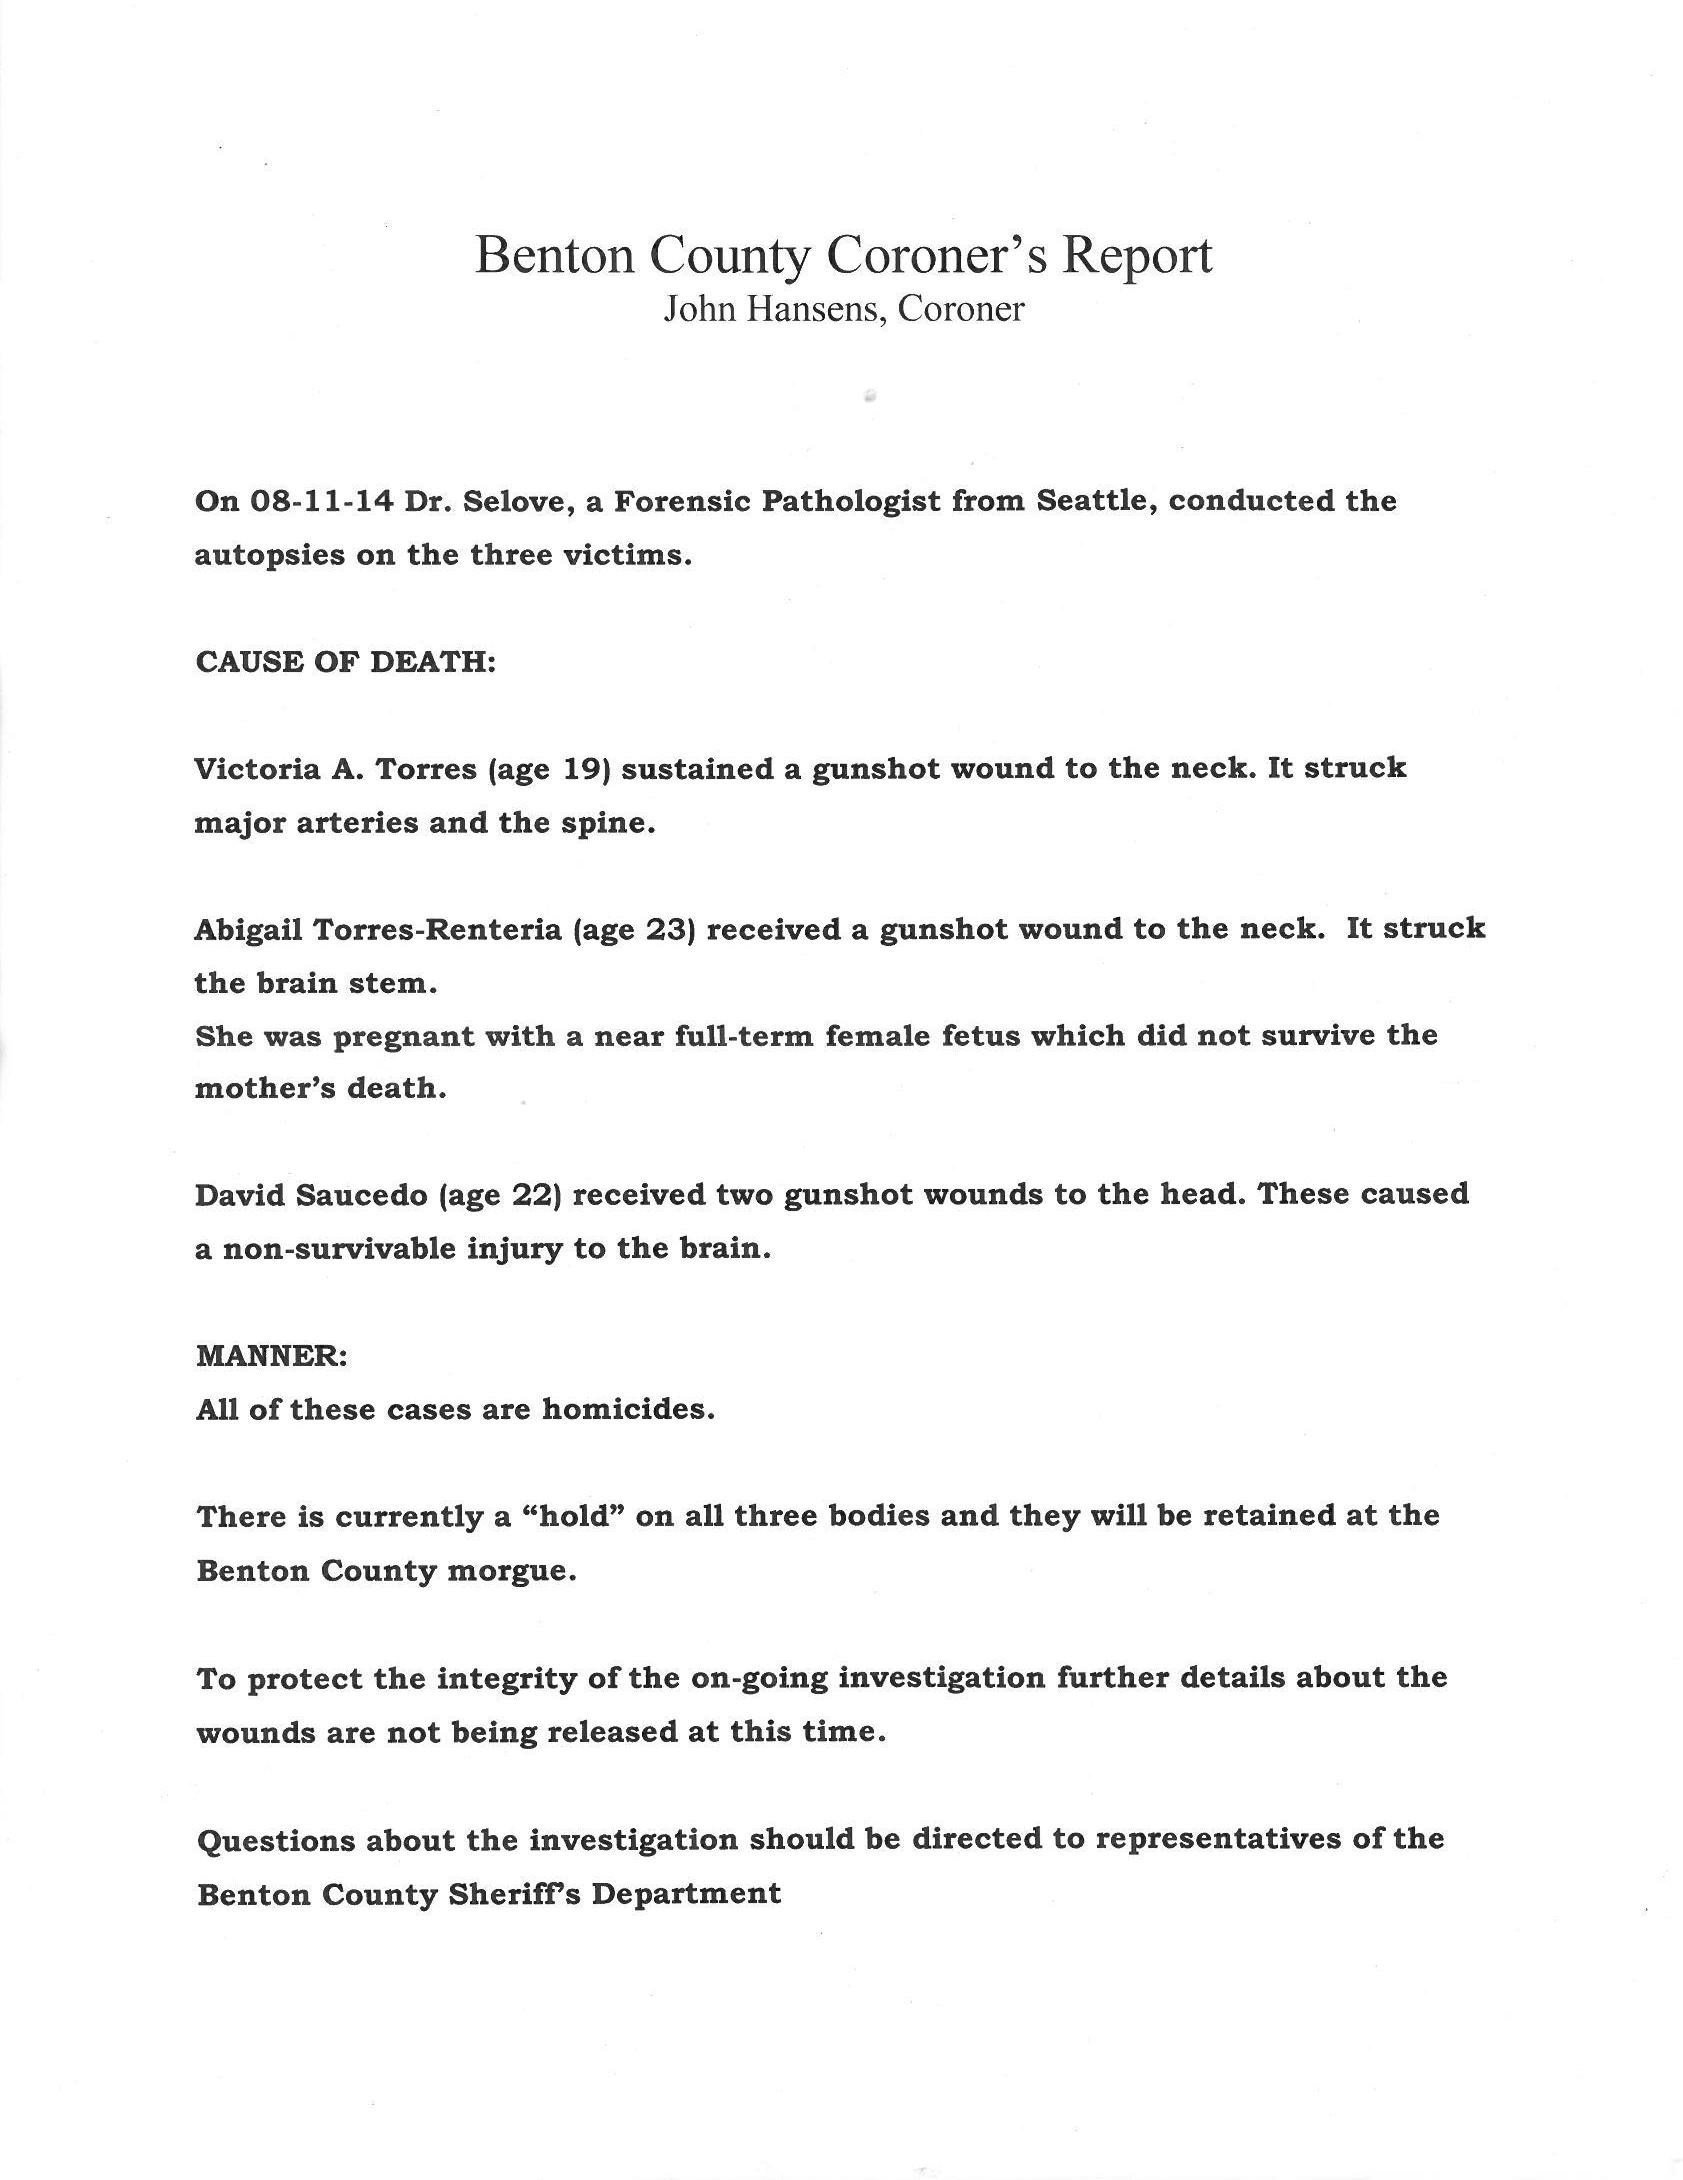 The full release from the Benton County Coroner.